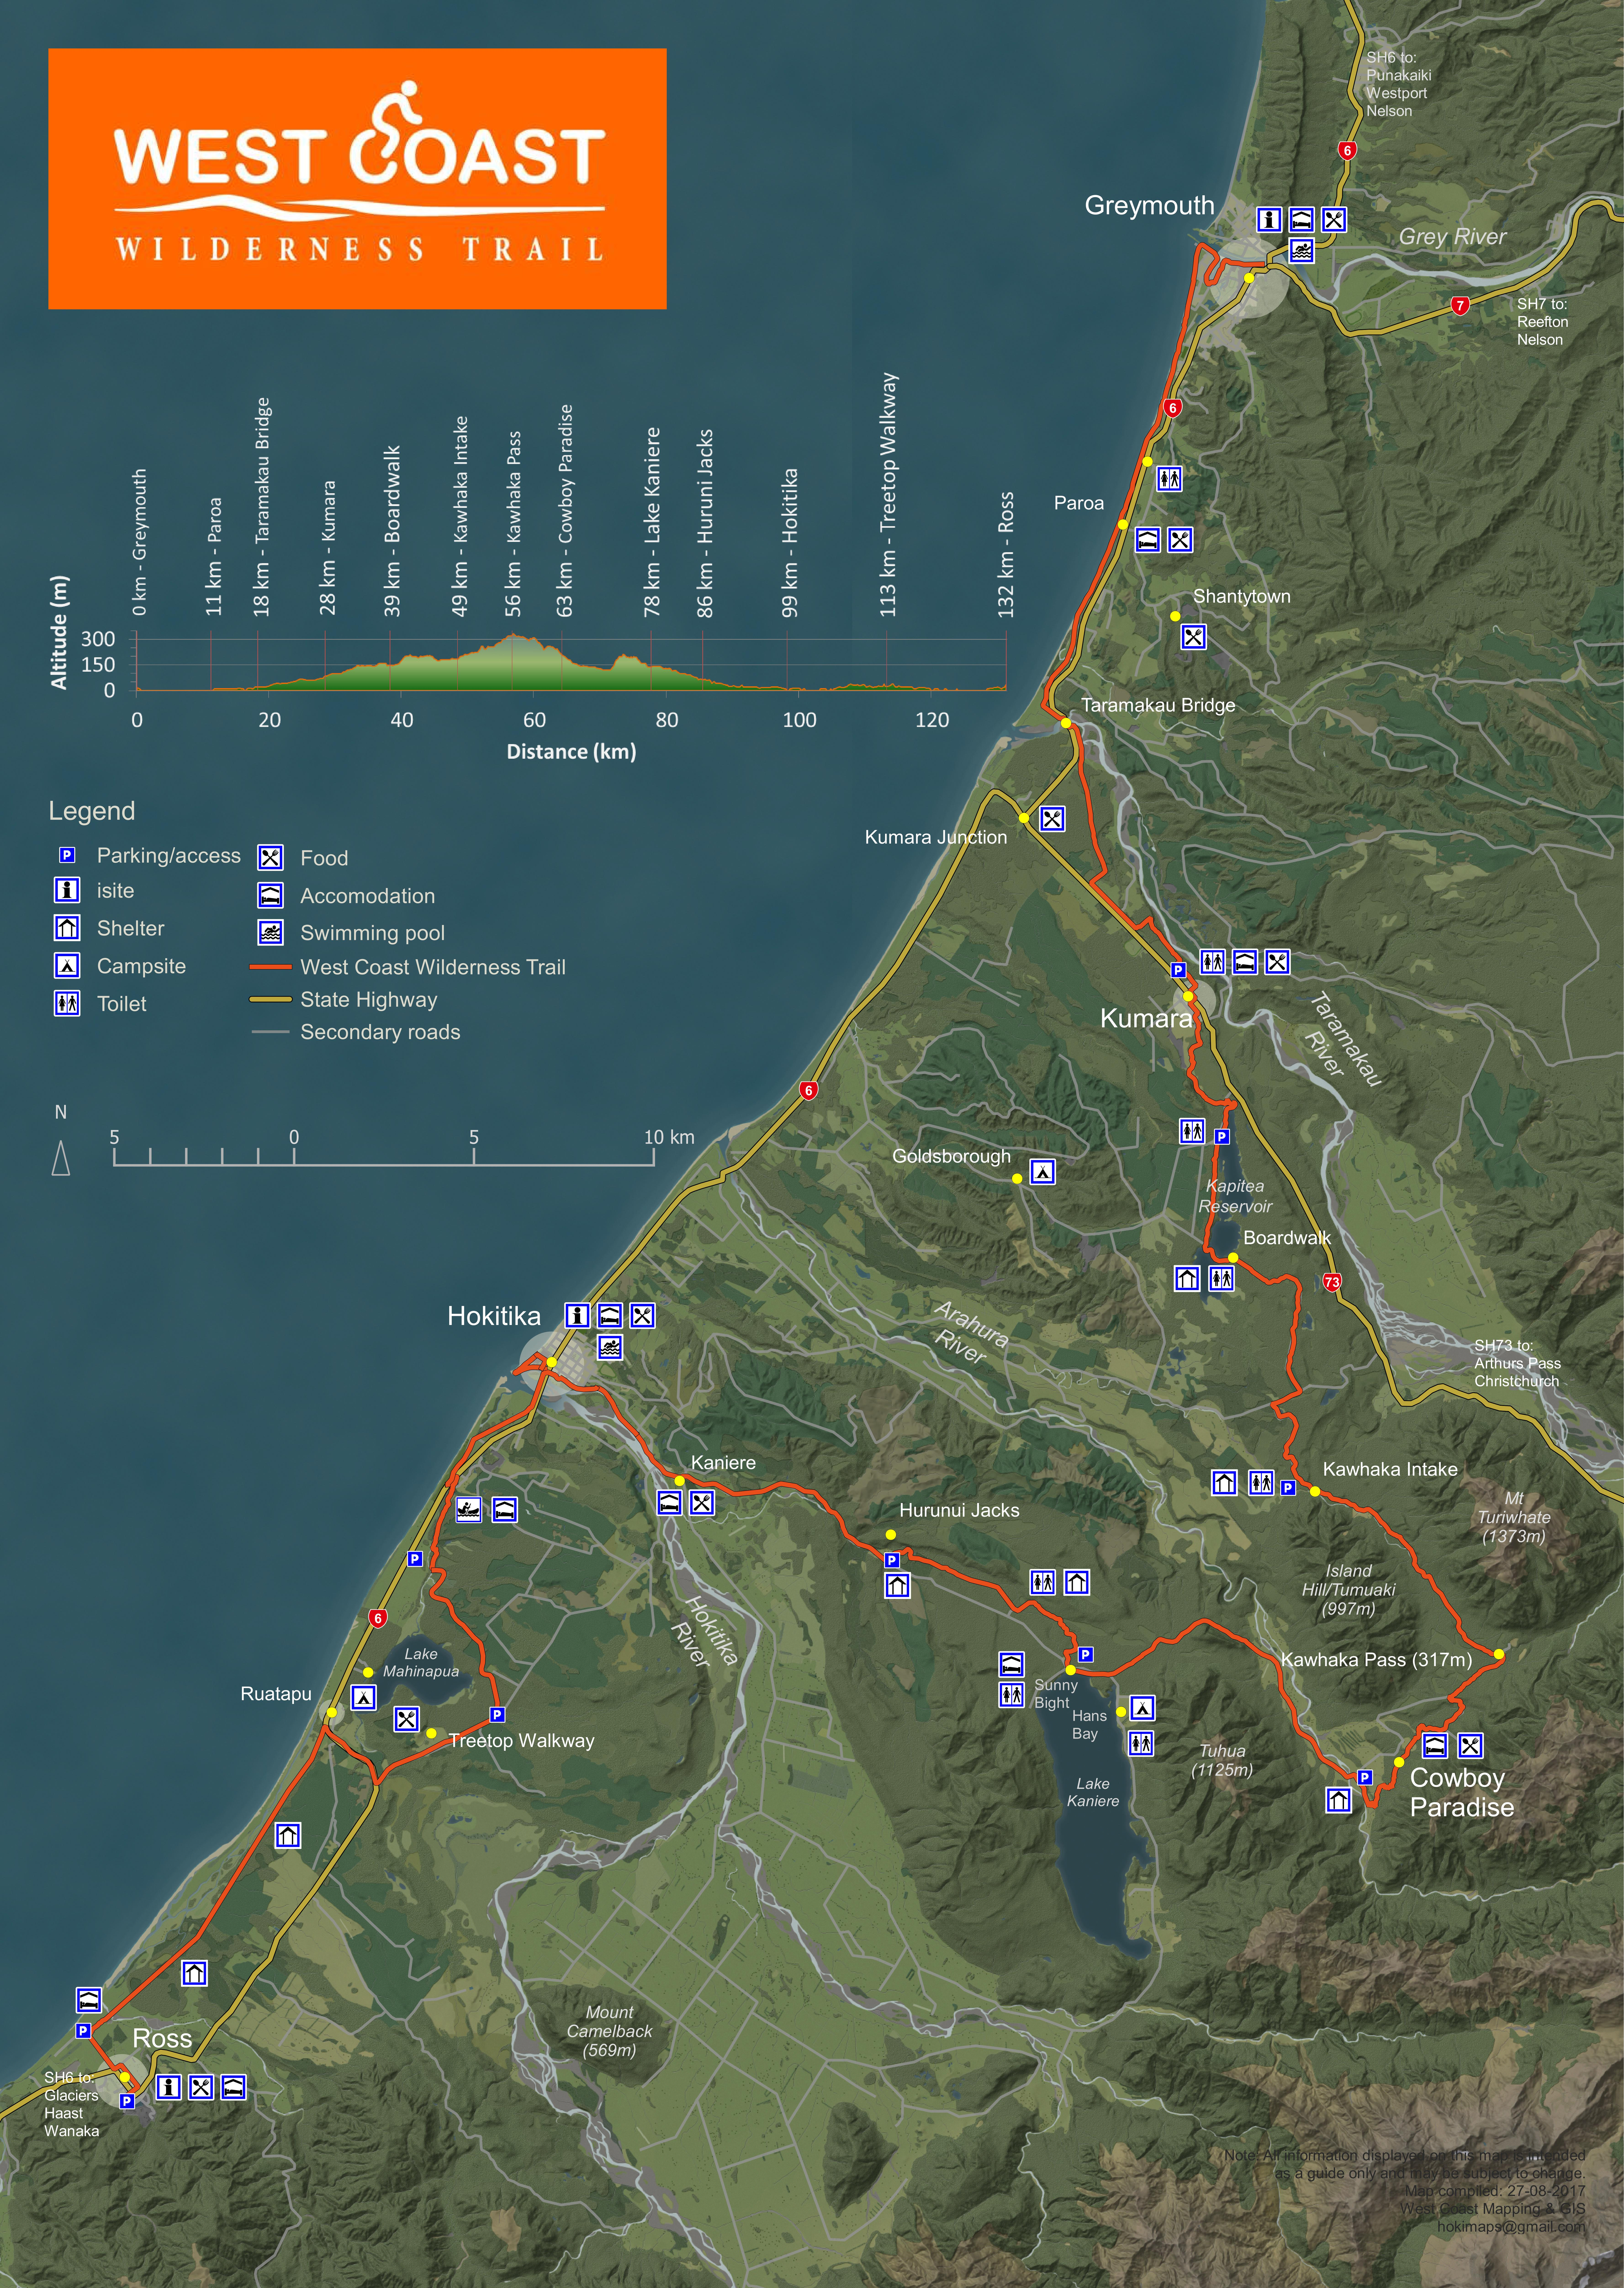 West Coast Wilderness Trail - Trail Overview & Map